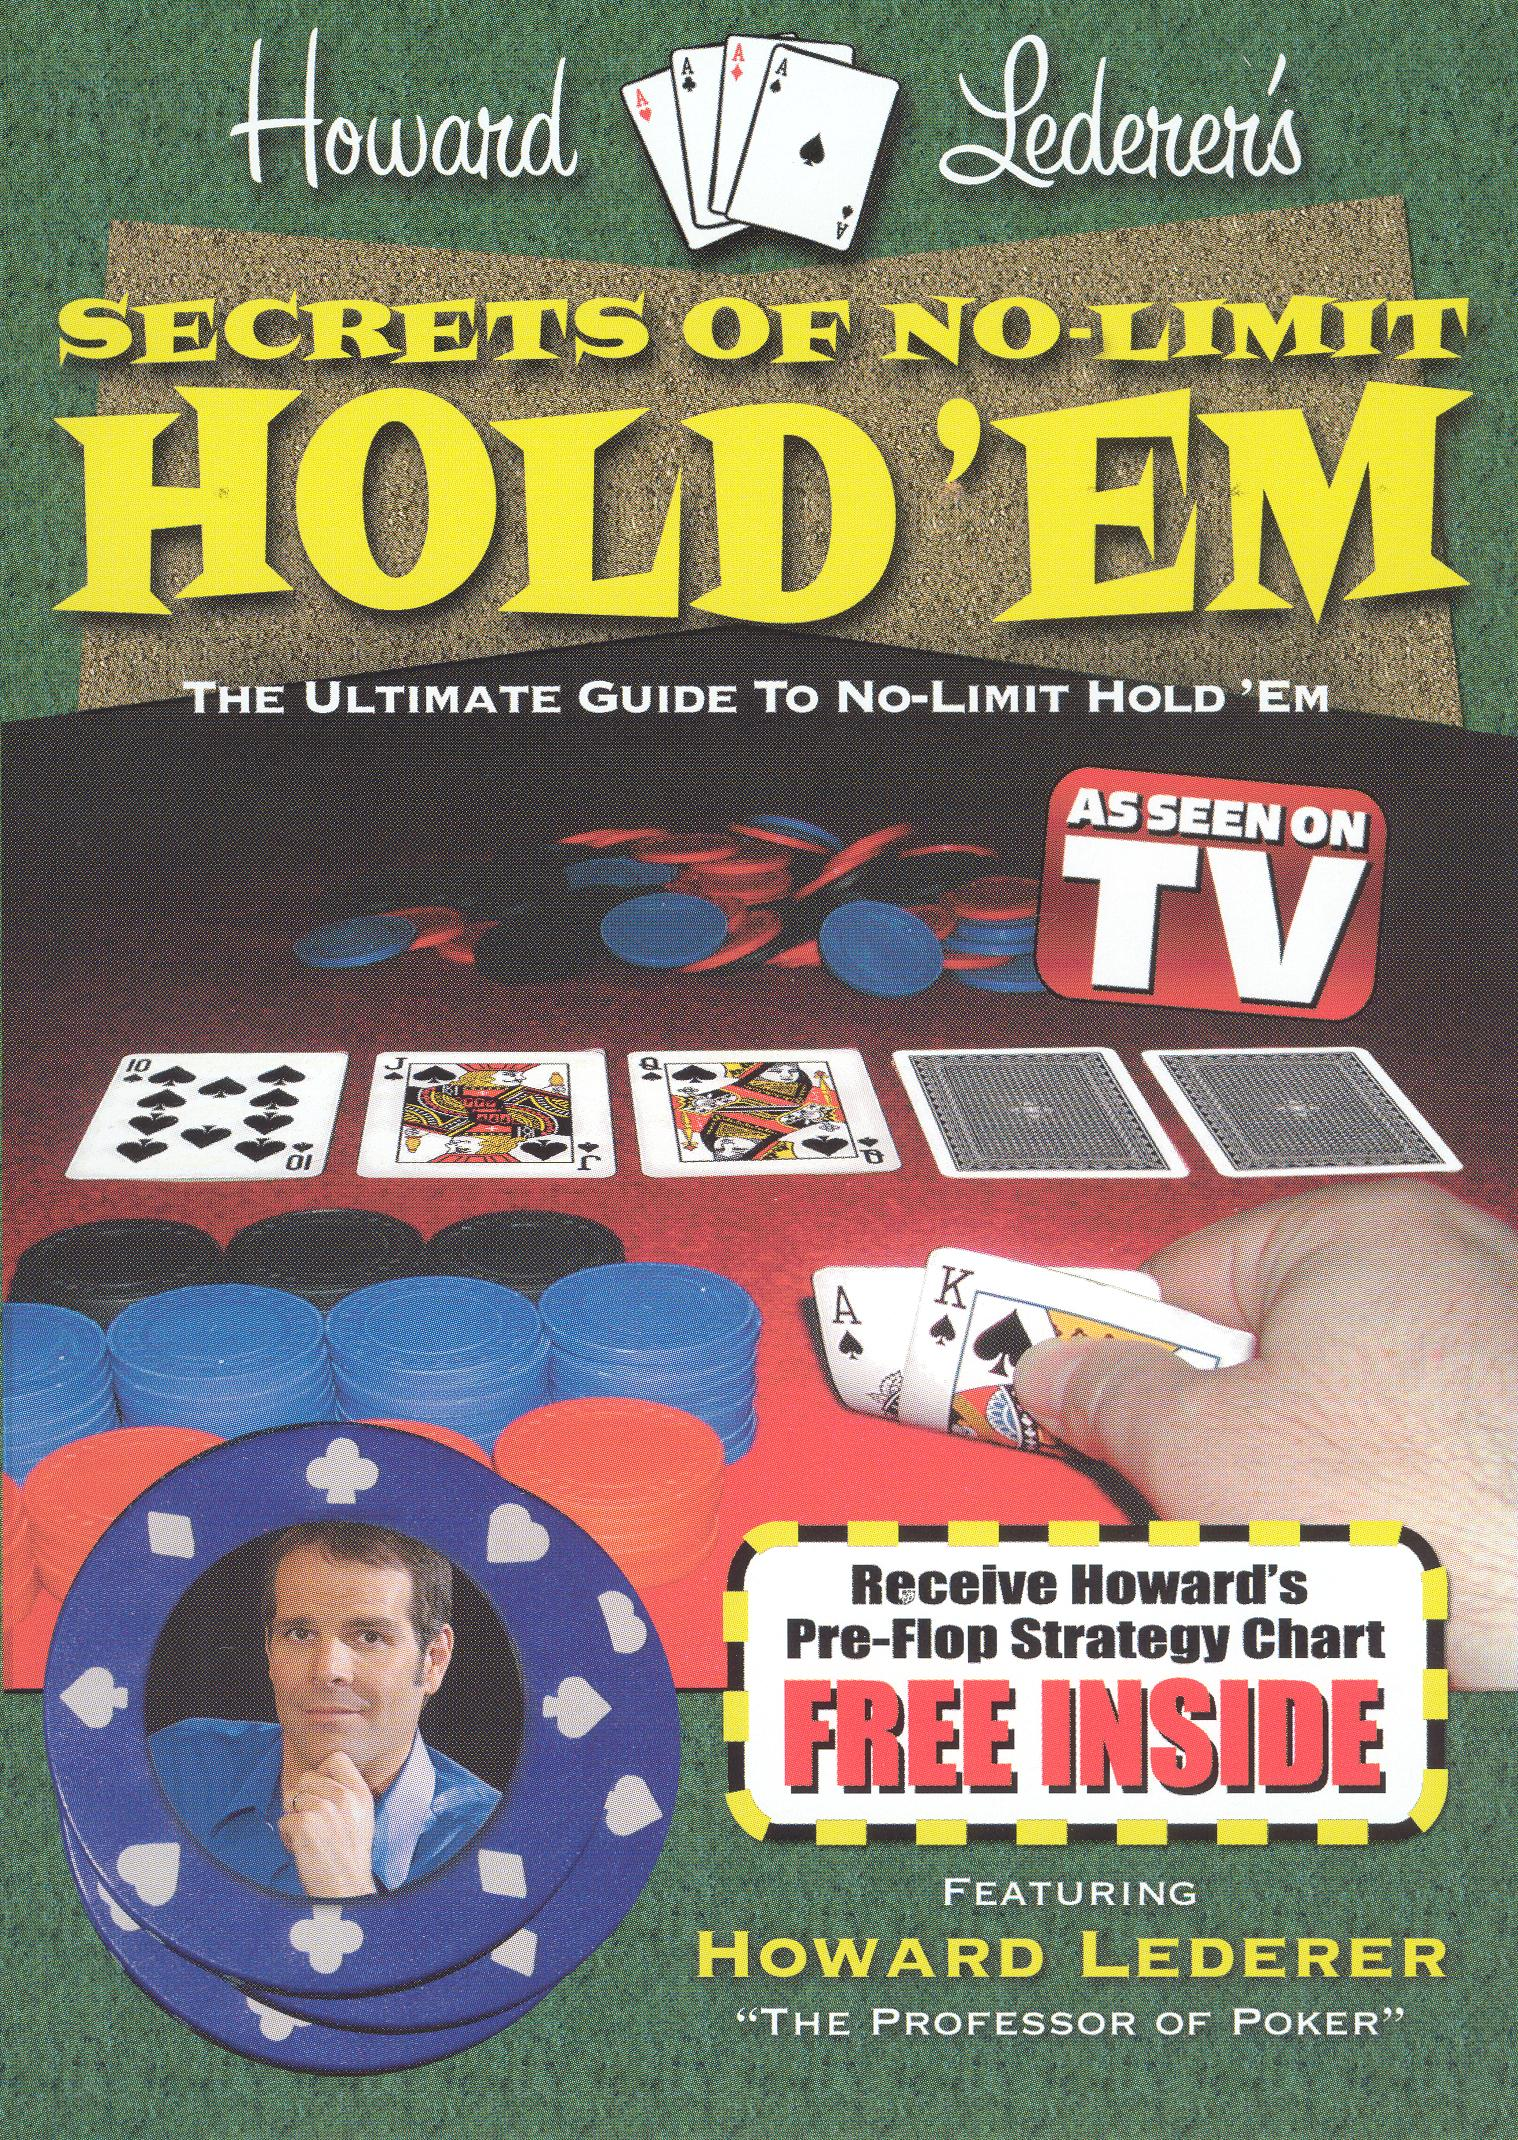 Poker: Secrets of No Limit Hold 'em